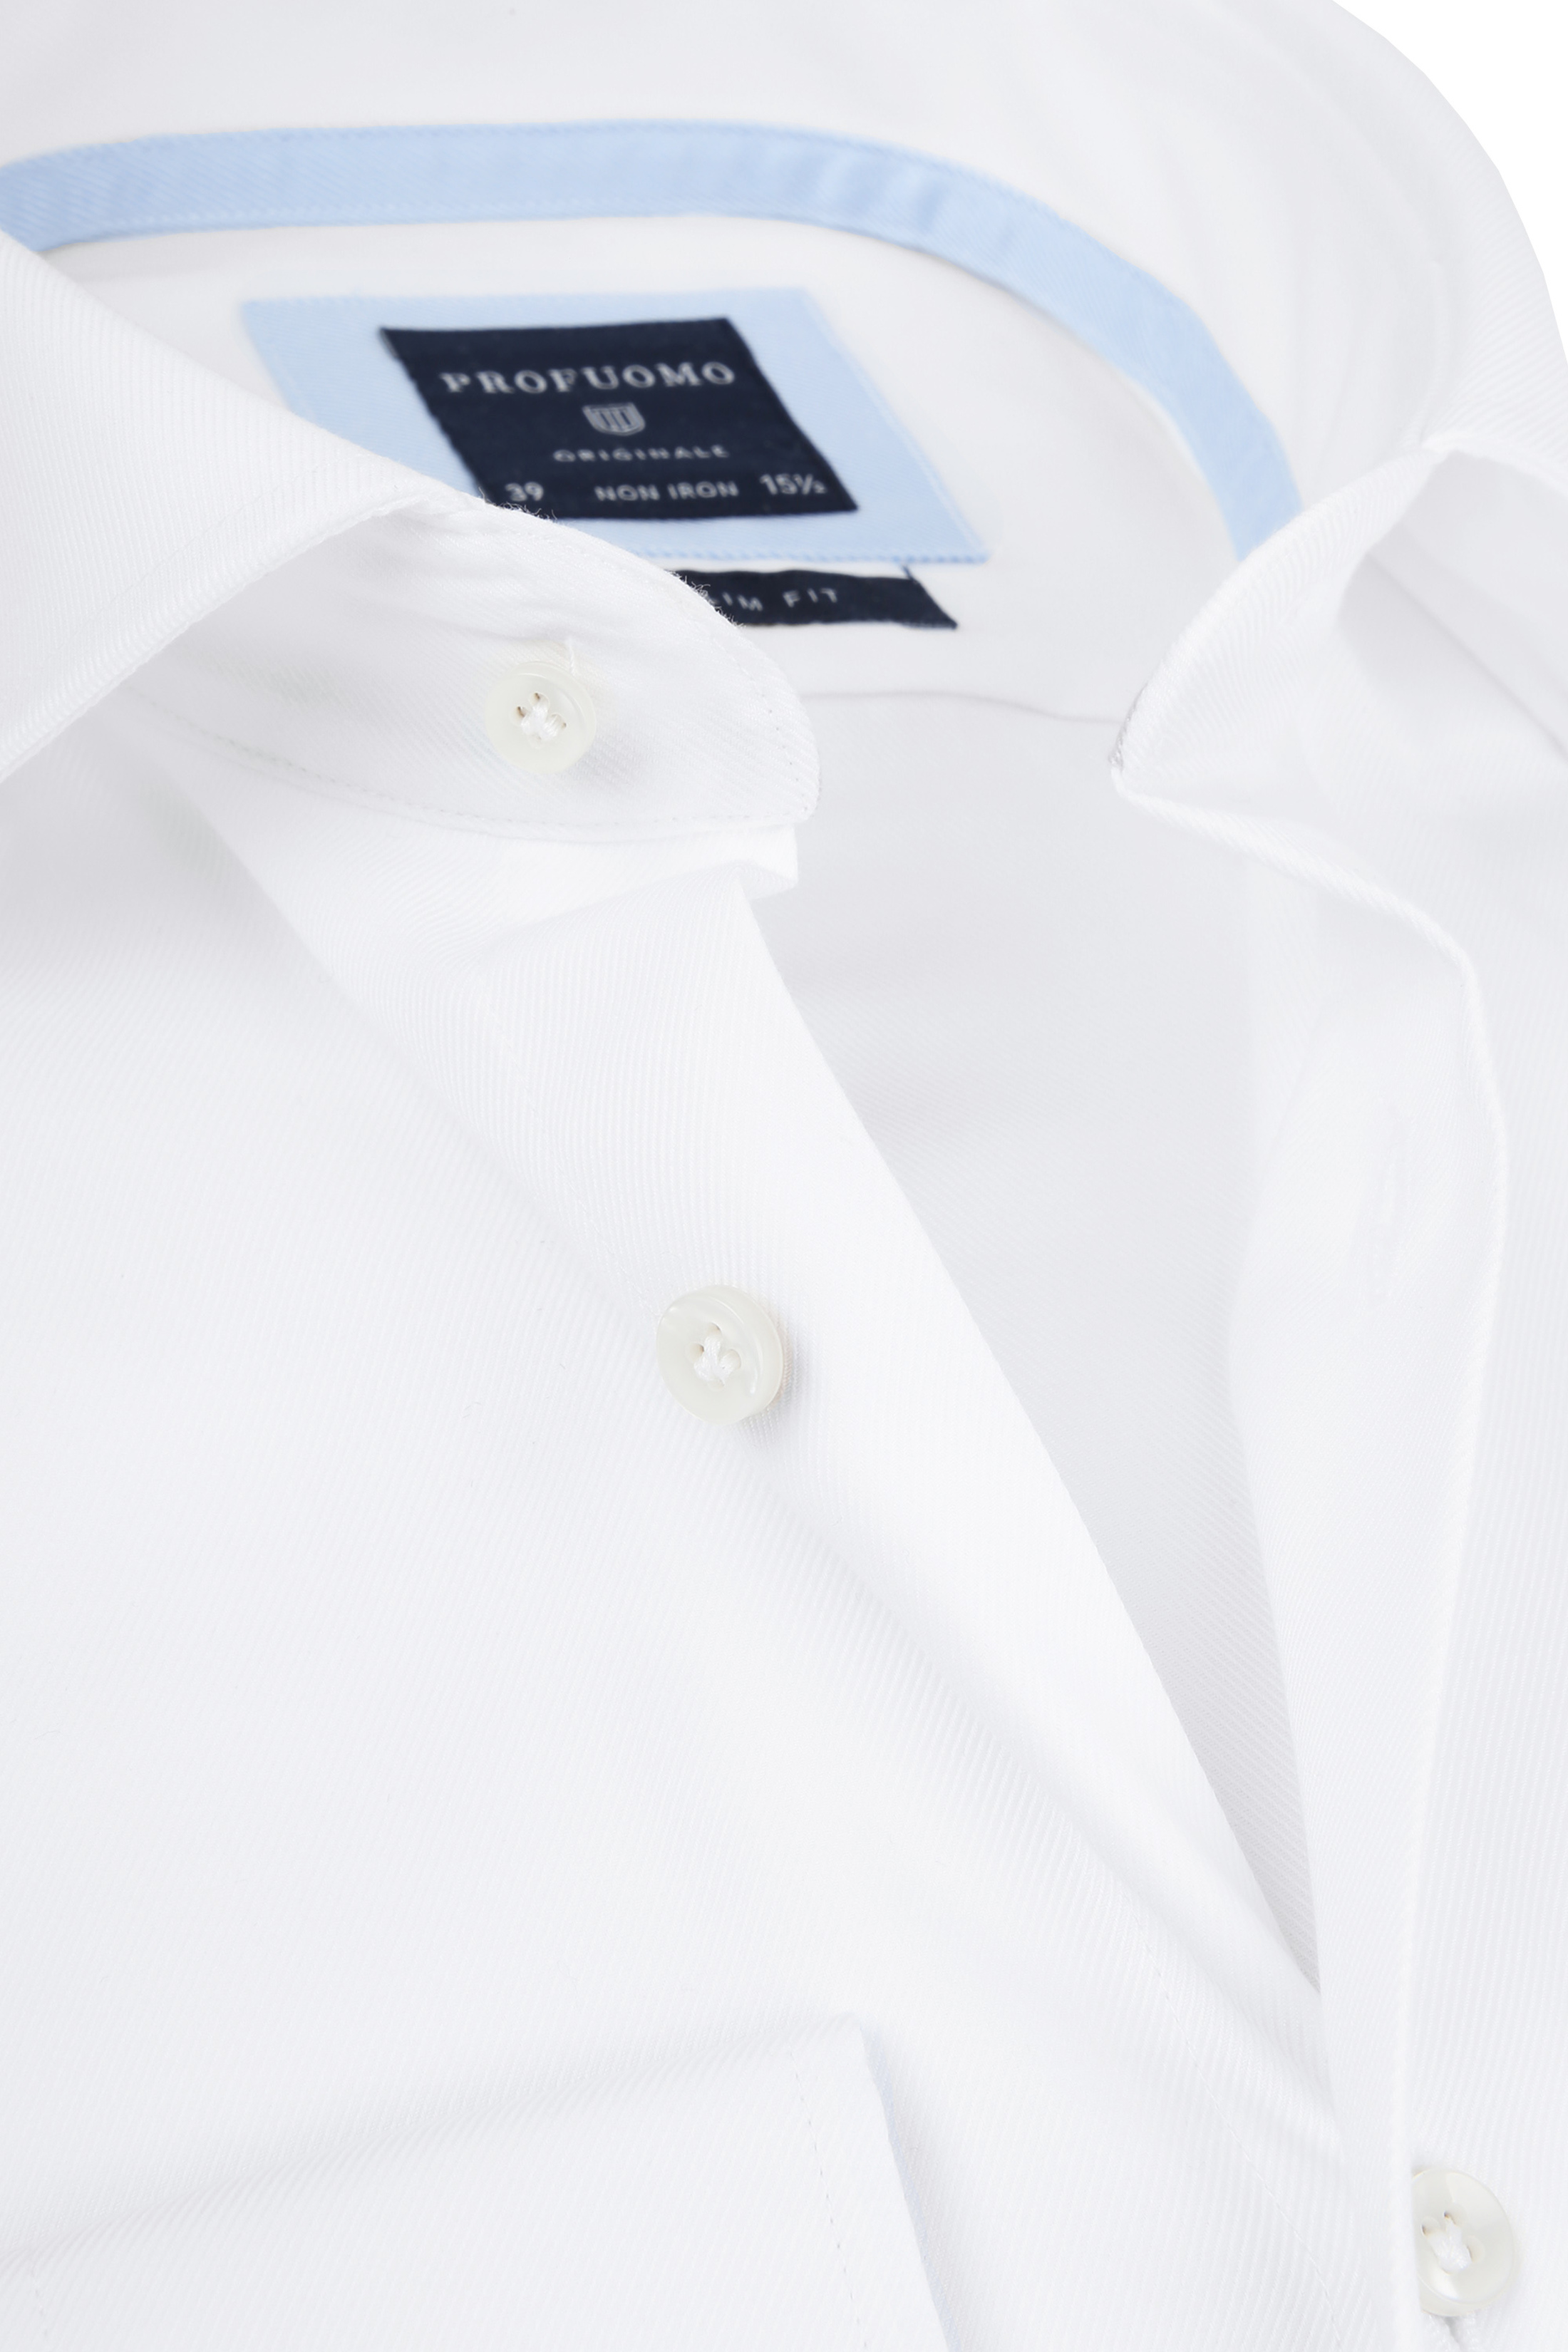 Profuomo Shirt White Blue Accent foto 1